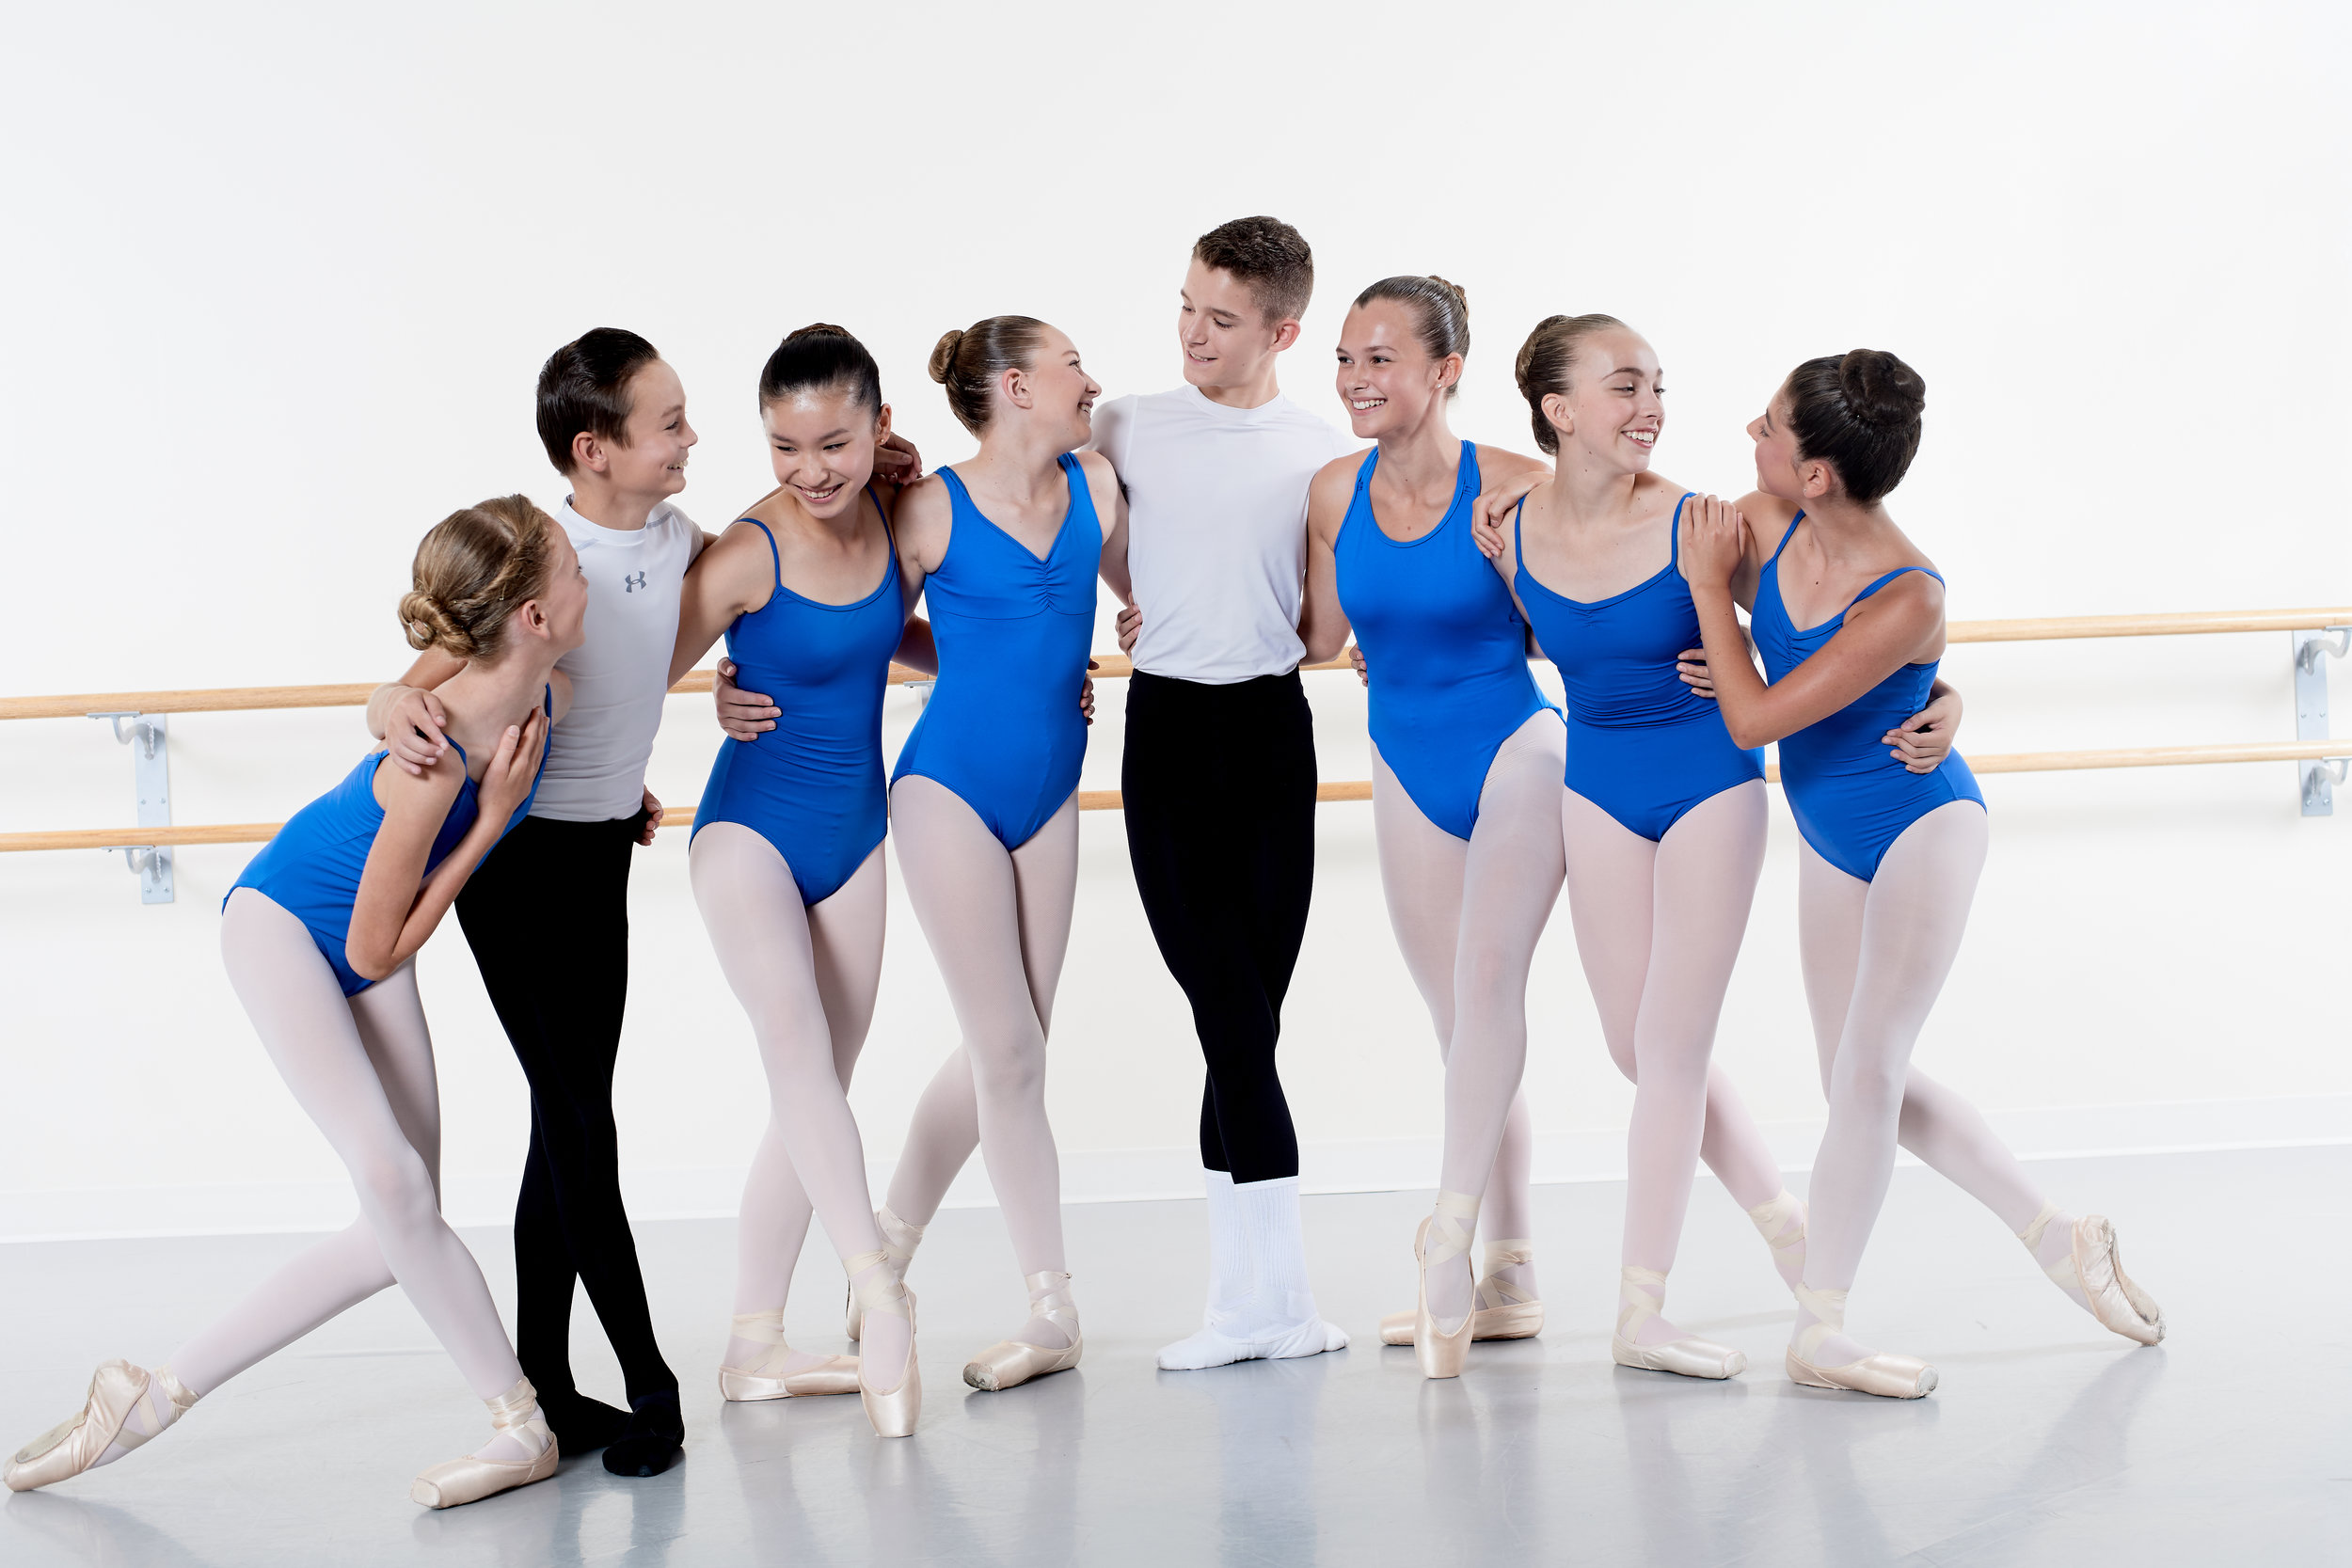 Advanced Youth I - One year of Youth Ballet IV-or-equivalent by Evaluation